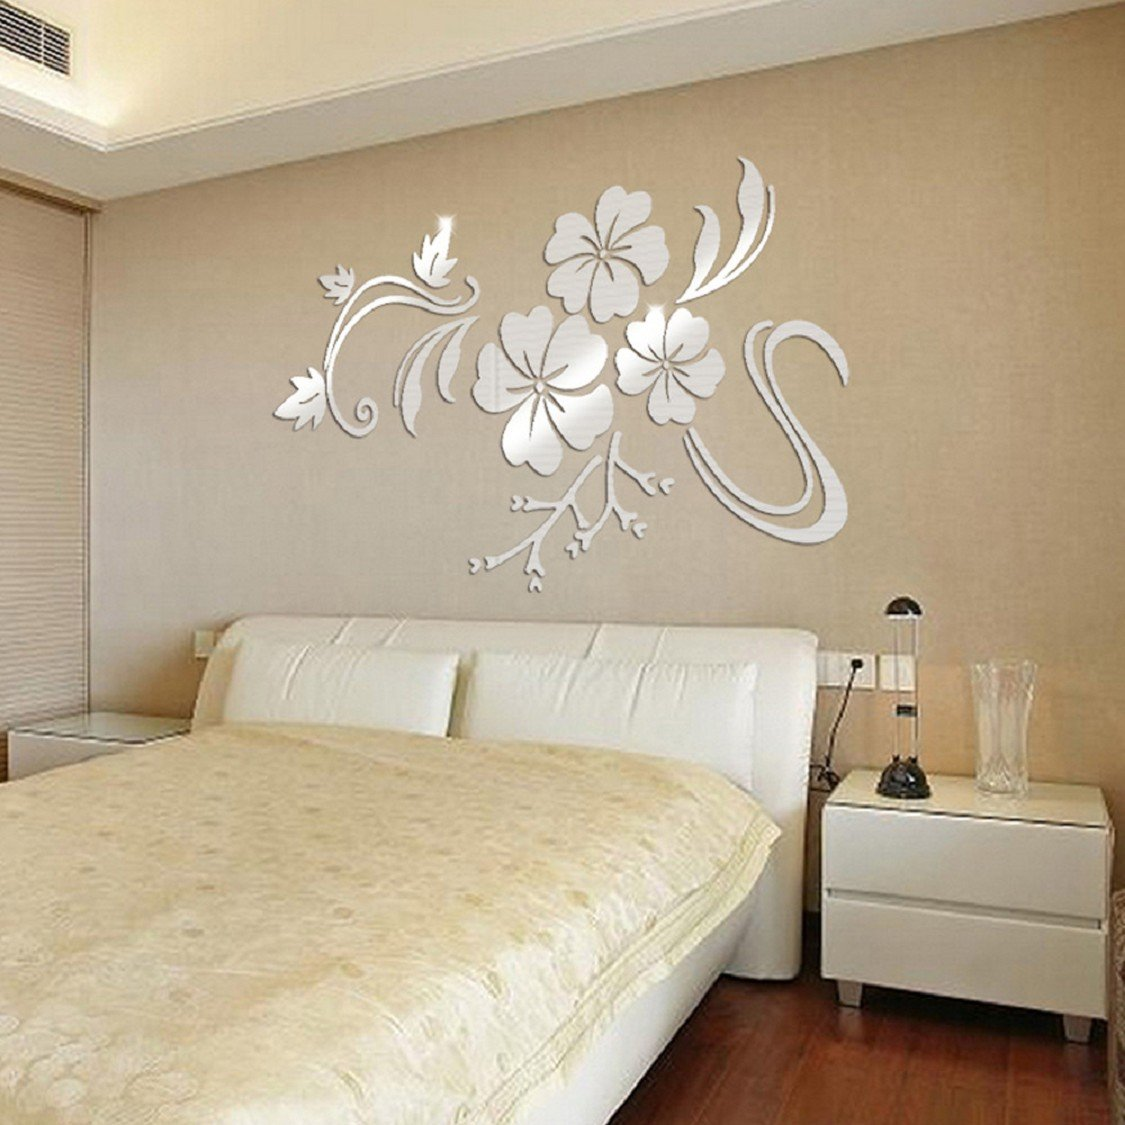 Great Ikevan 1Set Acrylic Art 3D Mirror Flower Wall Stickers DIY Home Wall Room Decals  Decor Sofa TV Setting Wall Removable Wall Stickers 78X60cm (Sliver) ...